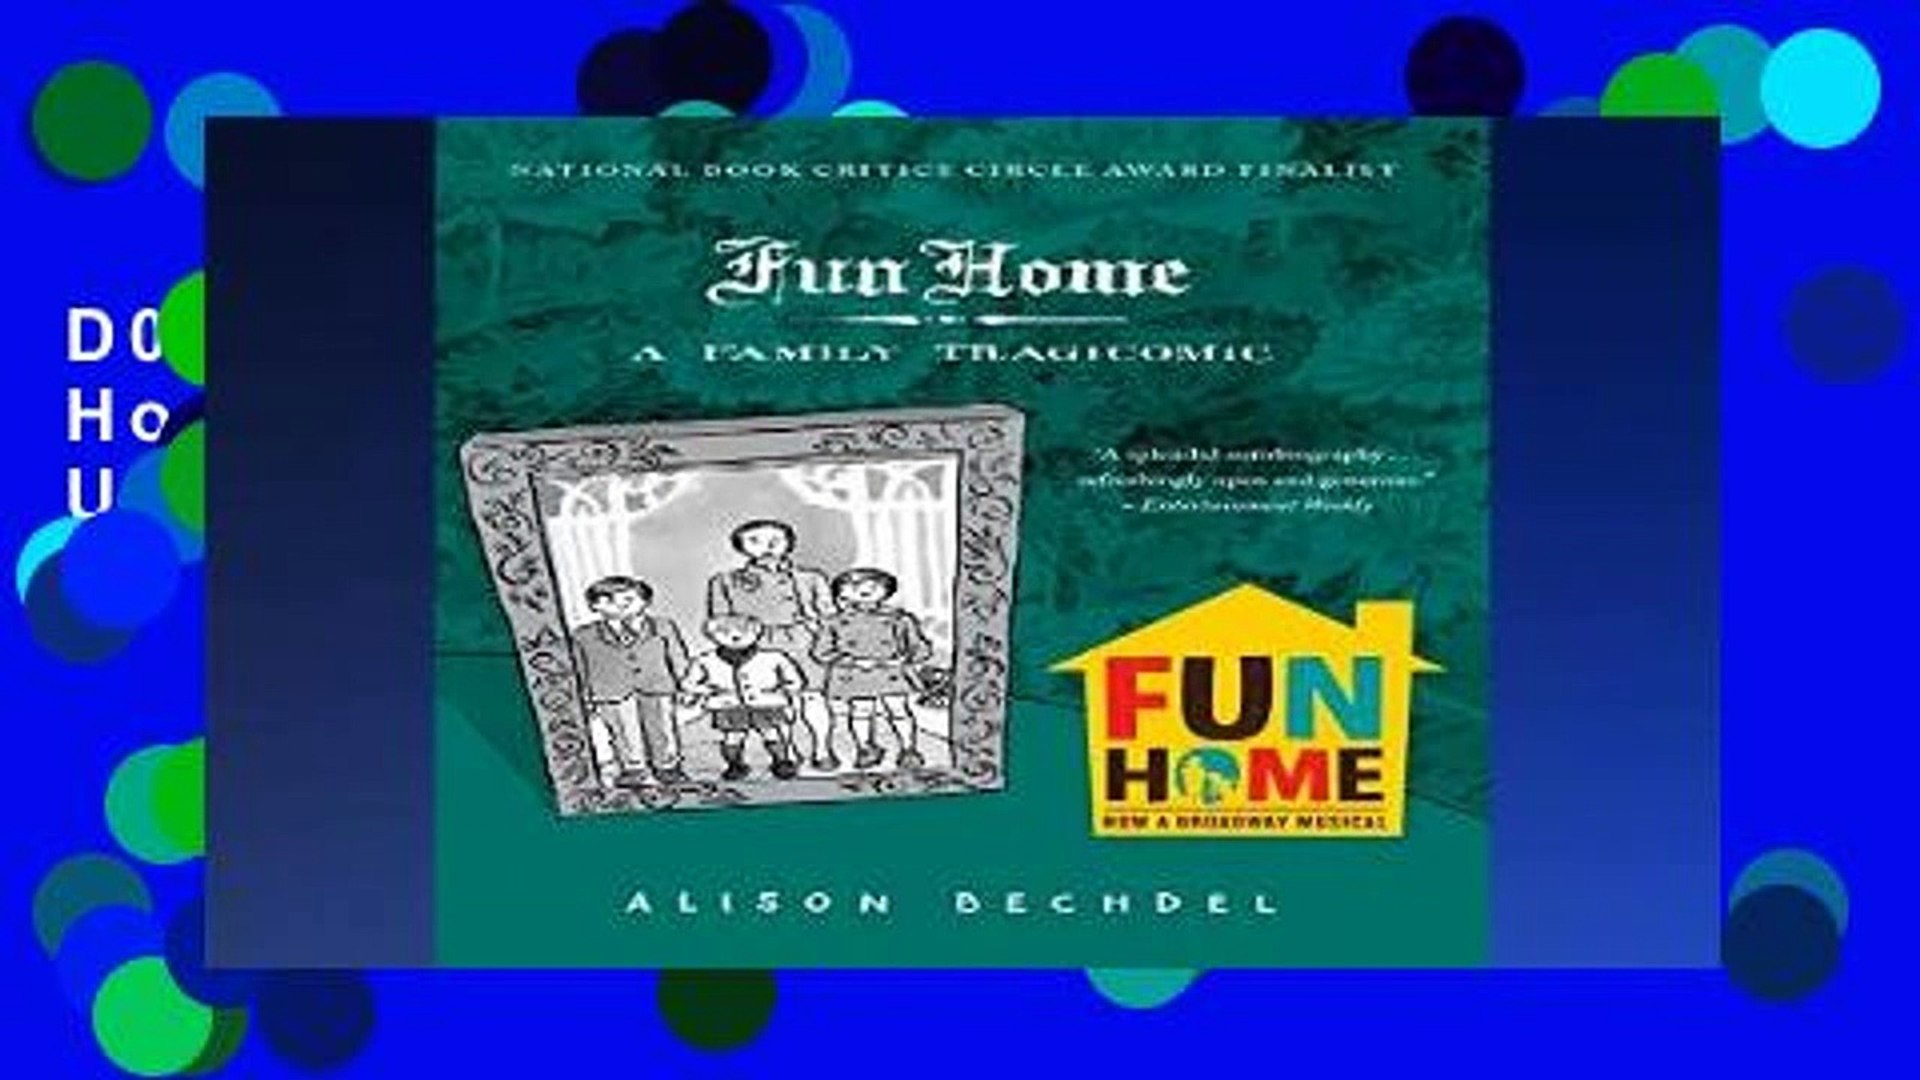 D0wnload Online Fun Home: A Family Tragicomic Unlimited